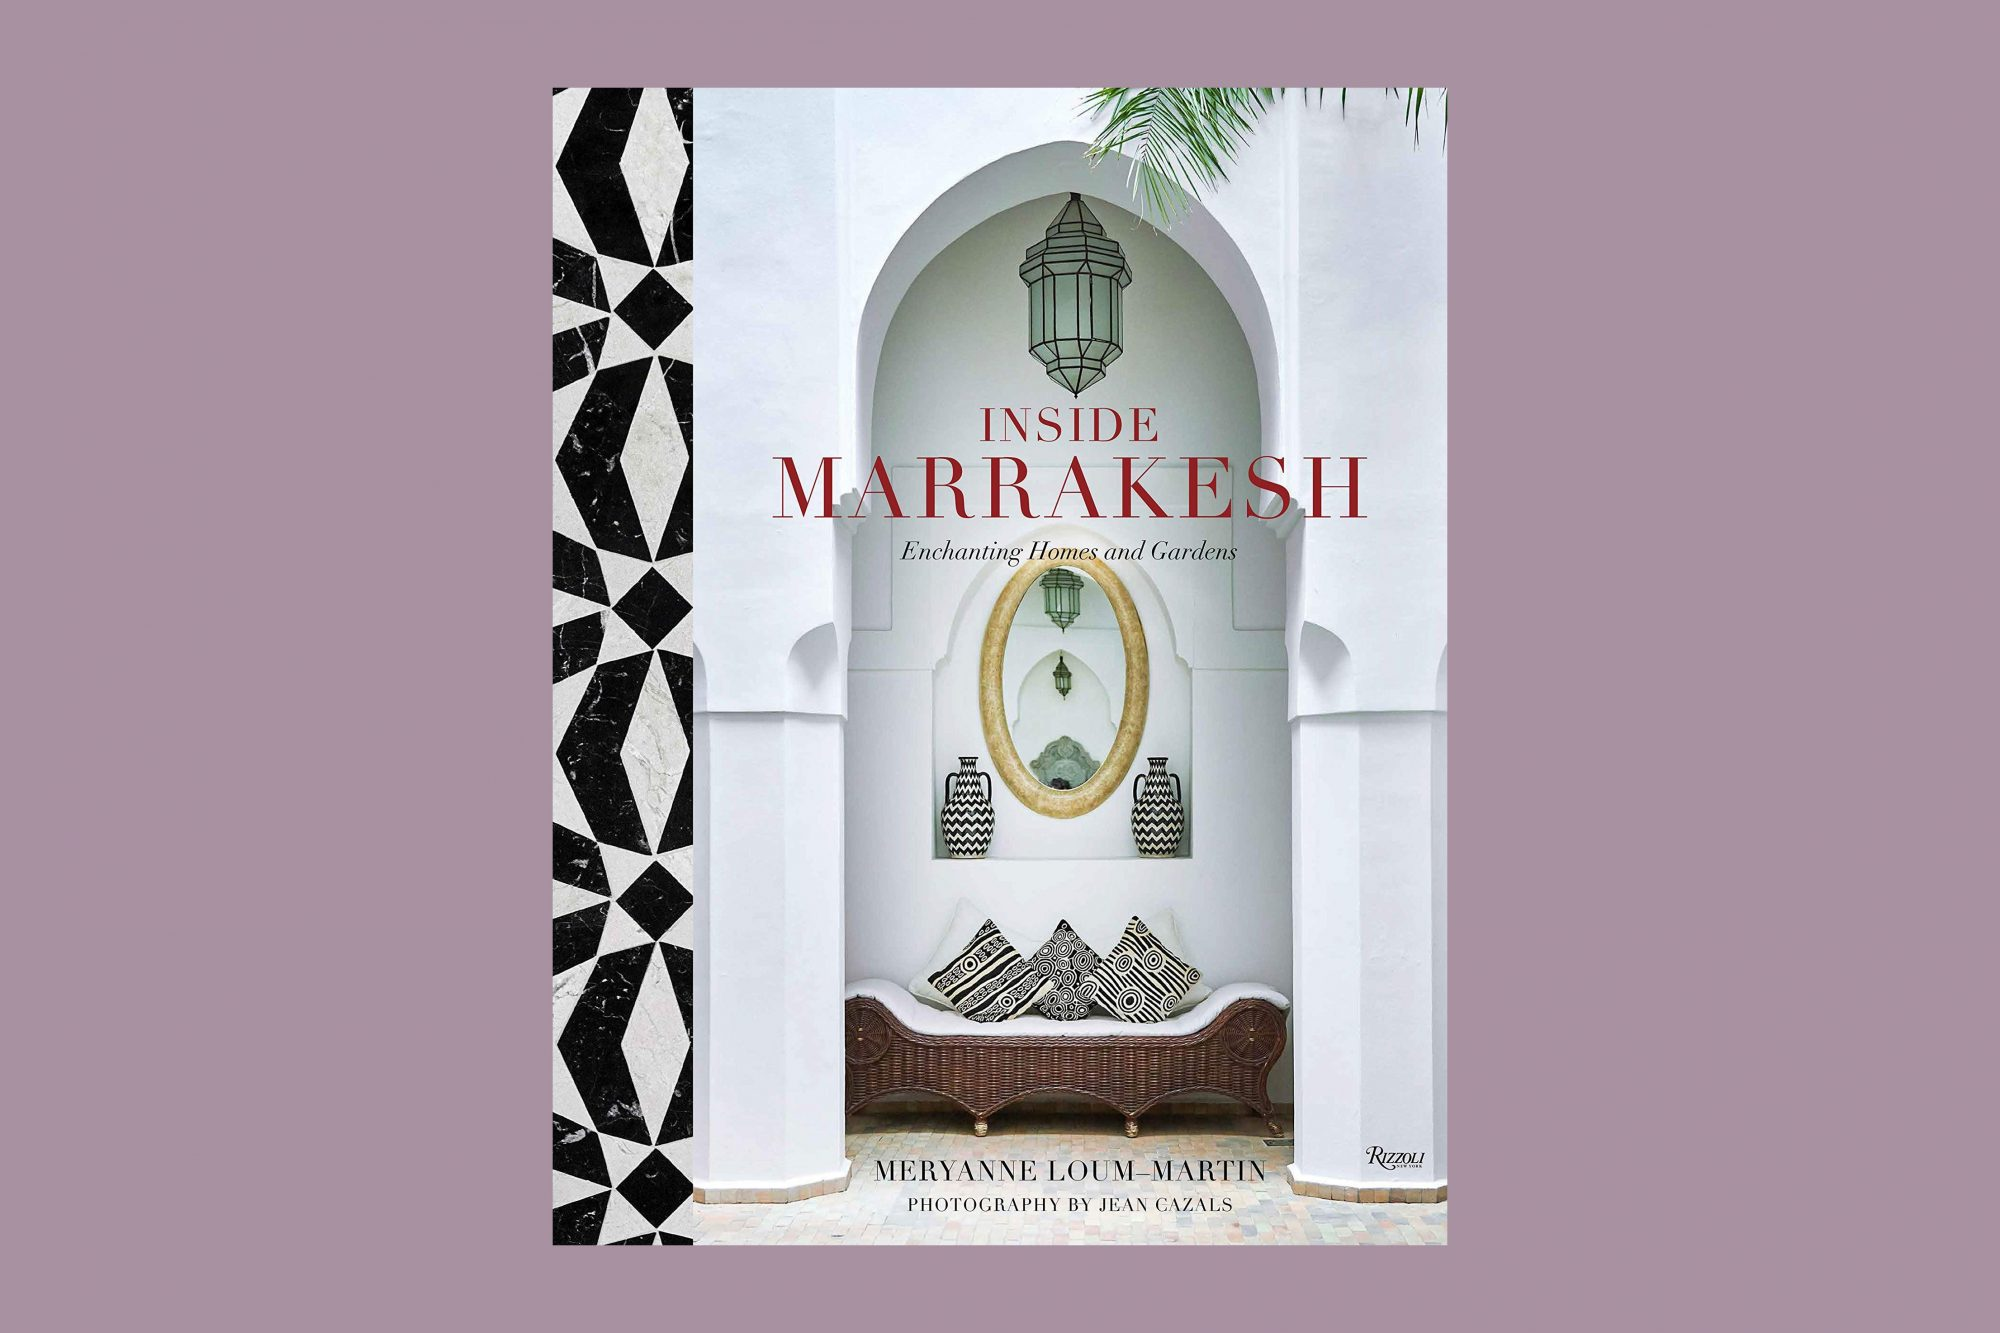 Inside Marrakesh: Enchanting Homes and Gardens by Meryanne Loum-Martin and Jean Cazals